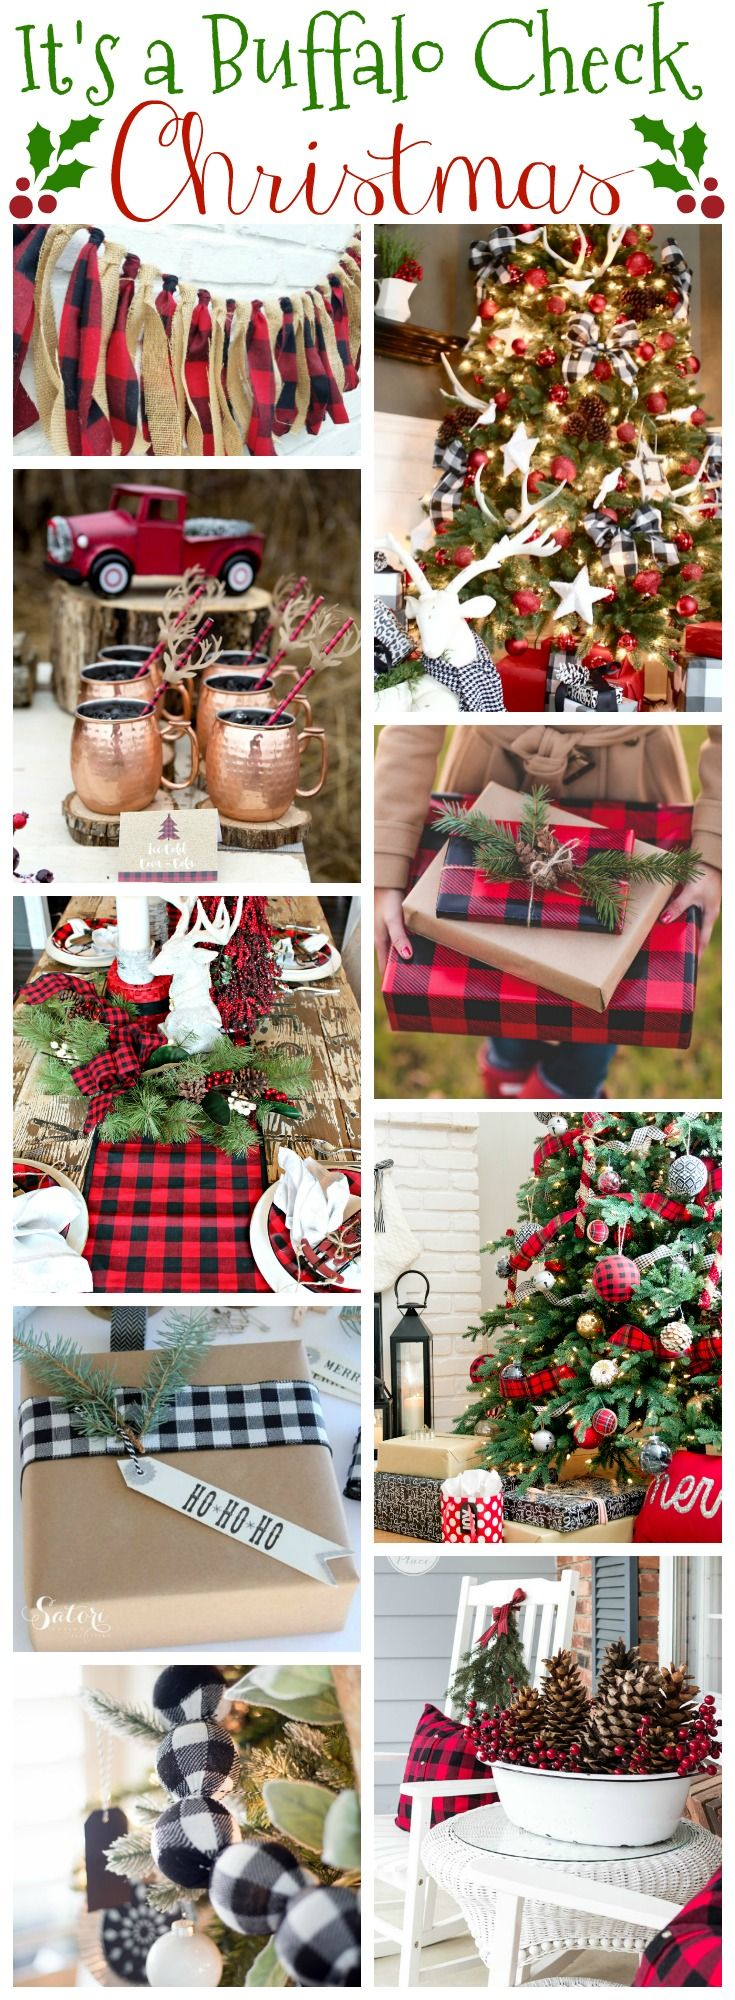 Best Christmas Table Cloth Ideas On Pinterest Burlap - Christmas tartan table decoration